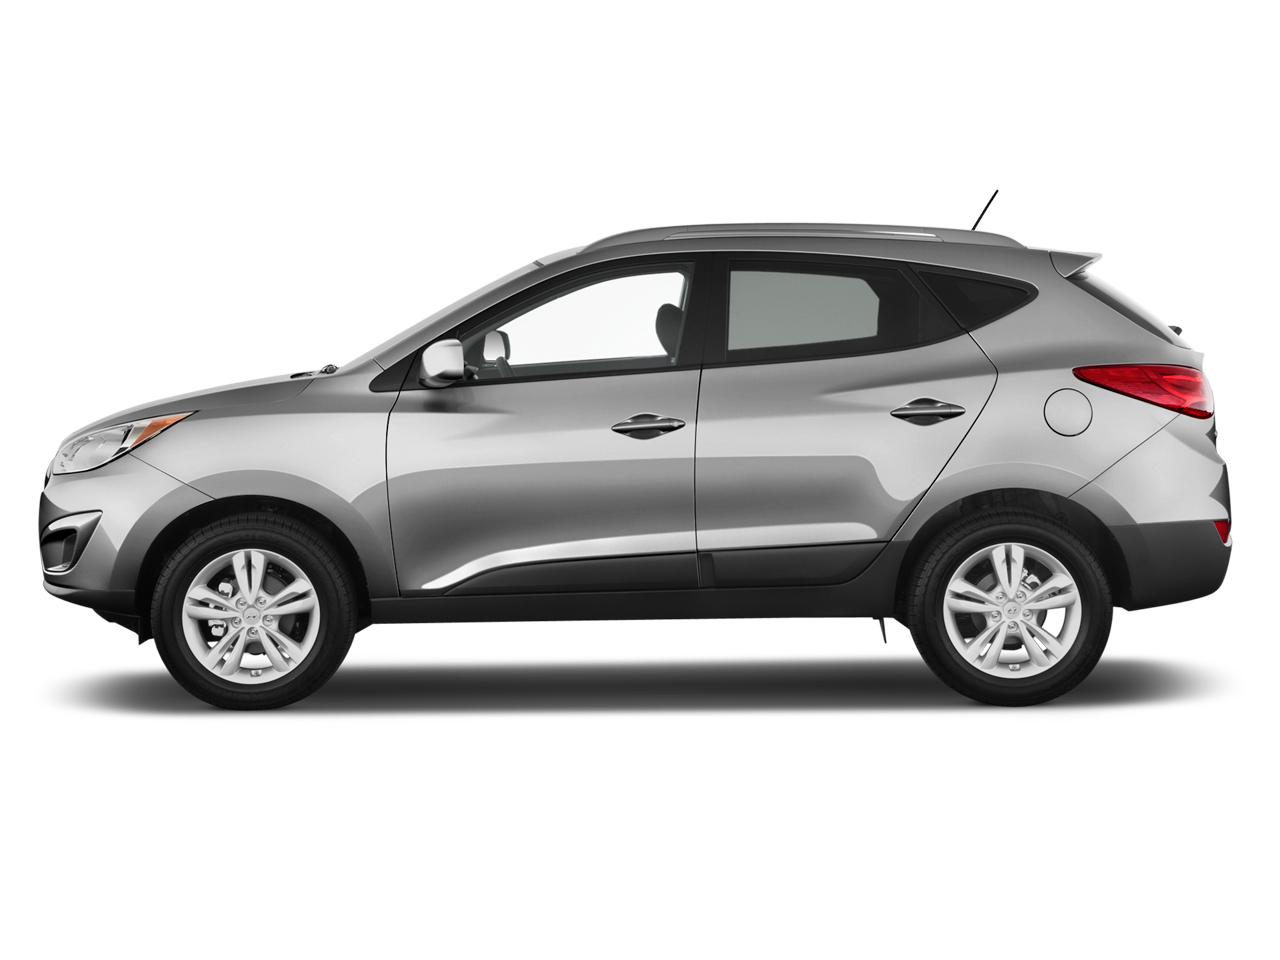 2012 hyundai tucson gas mileage the car connection. Black Bedroom Furniture Sets. Home Design Ideas